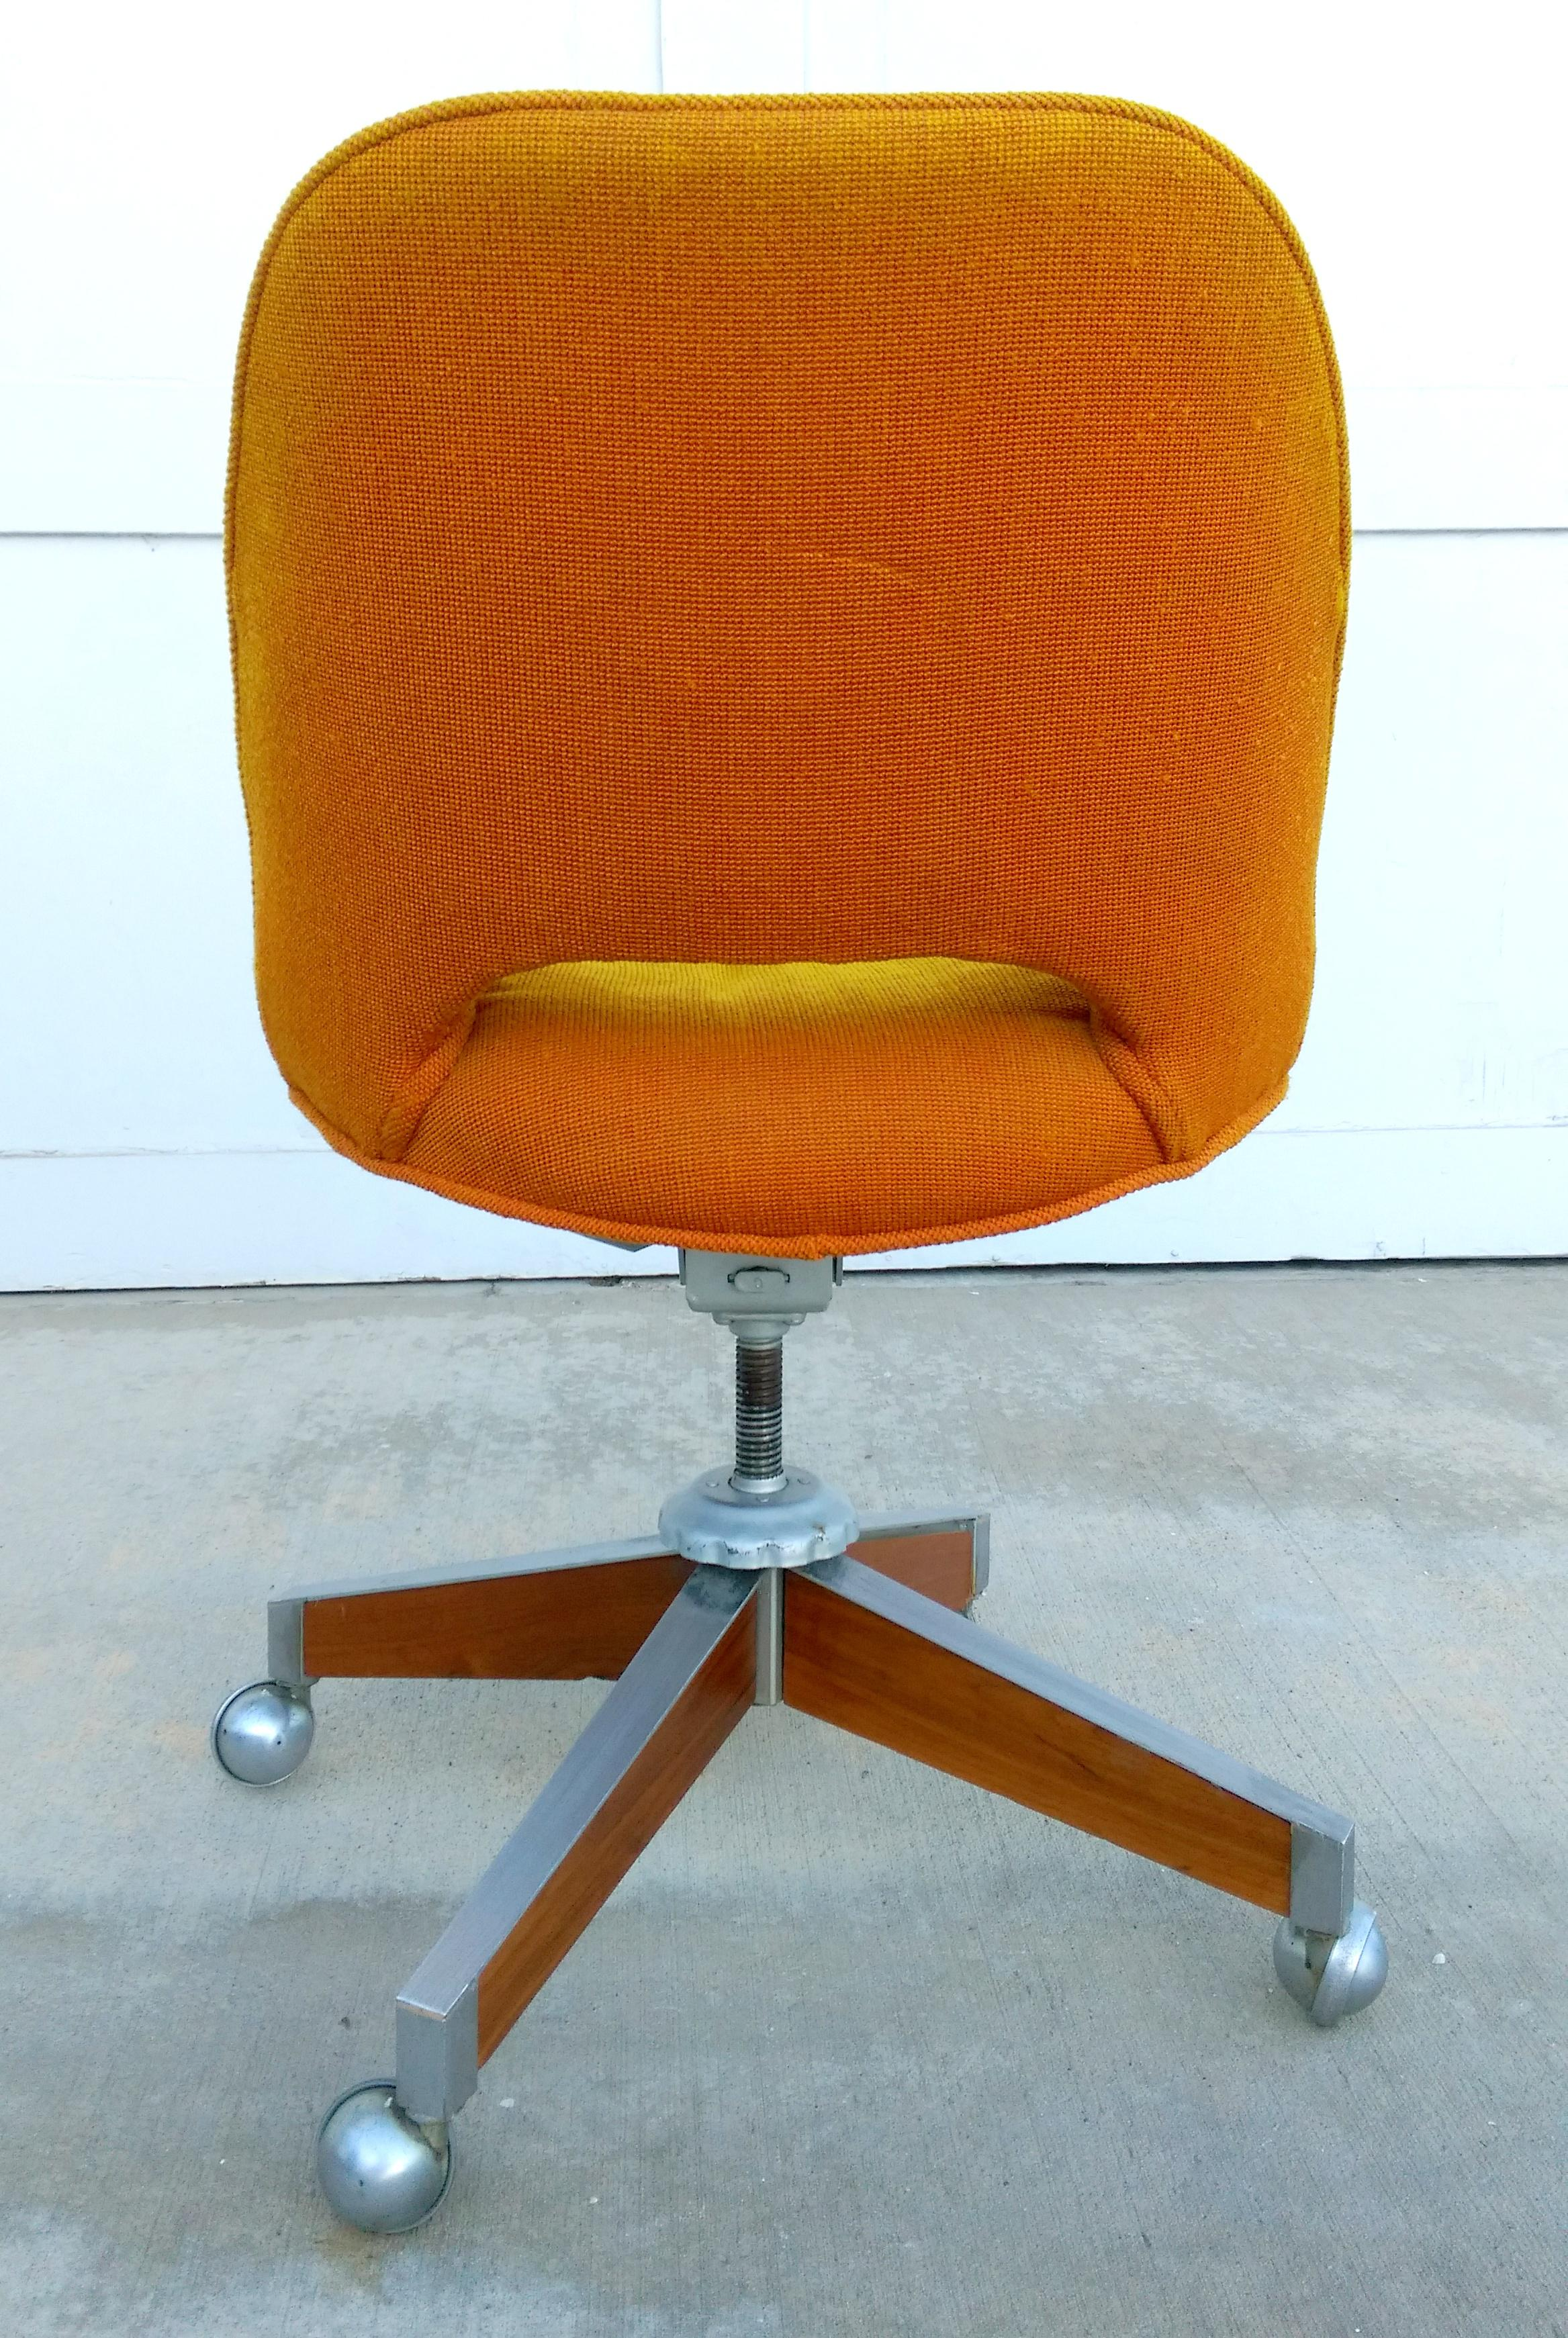 Vintage SENG Chicago Task Chair For Sale In Los Angeles - Image 6 of 10  sc 1 st  Chairish & Vintage SENG Chicago Task Chair | Chairish